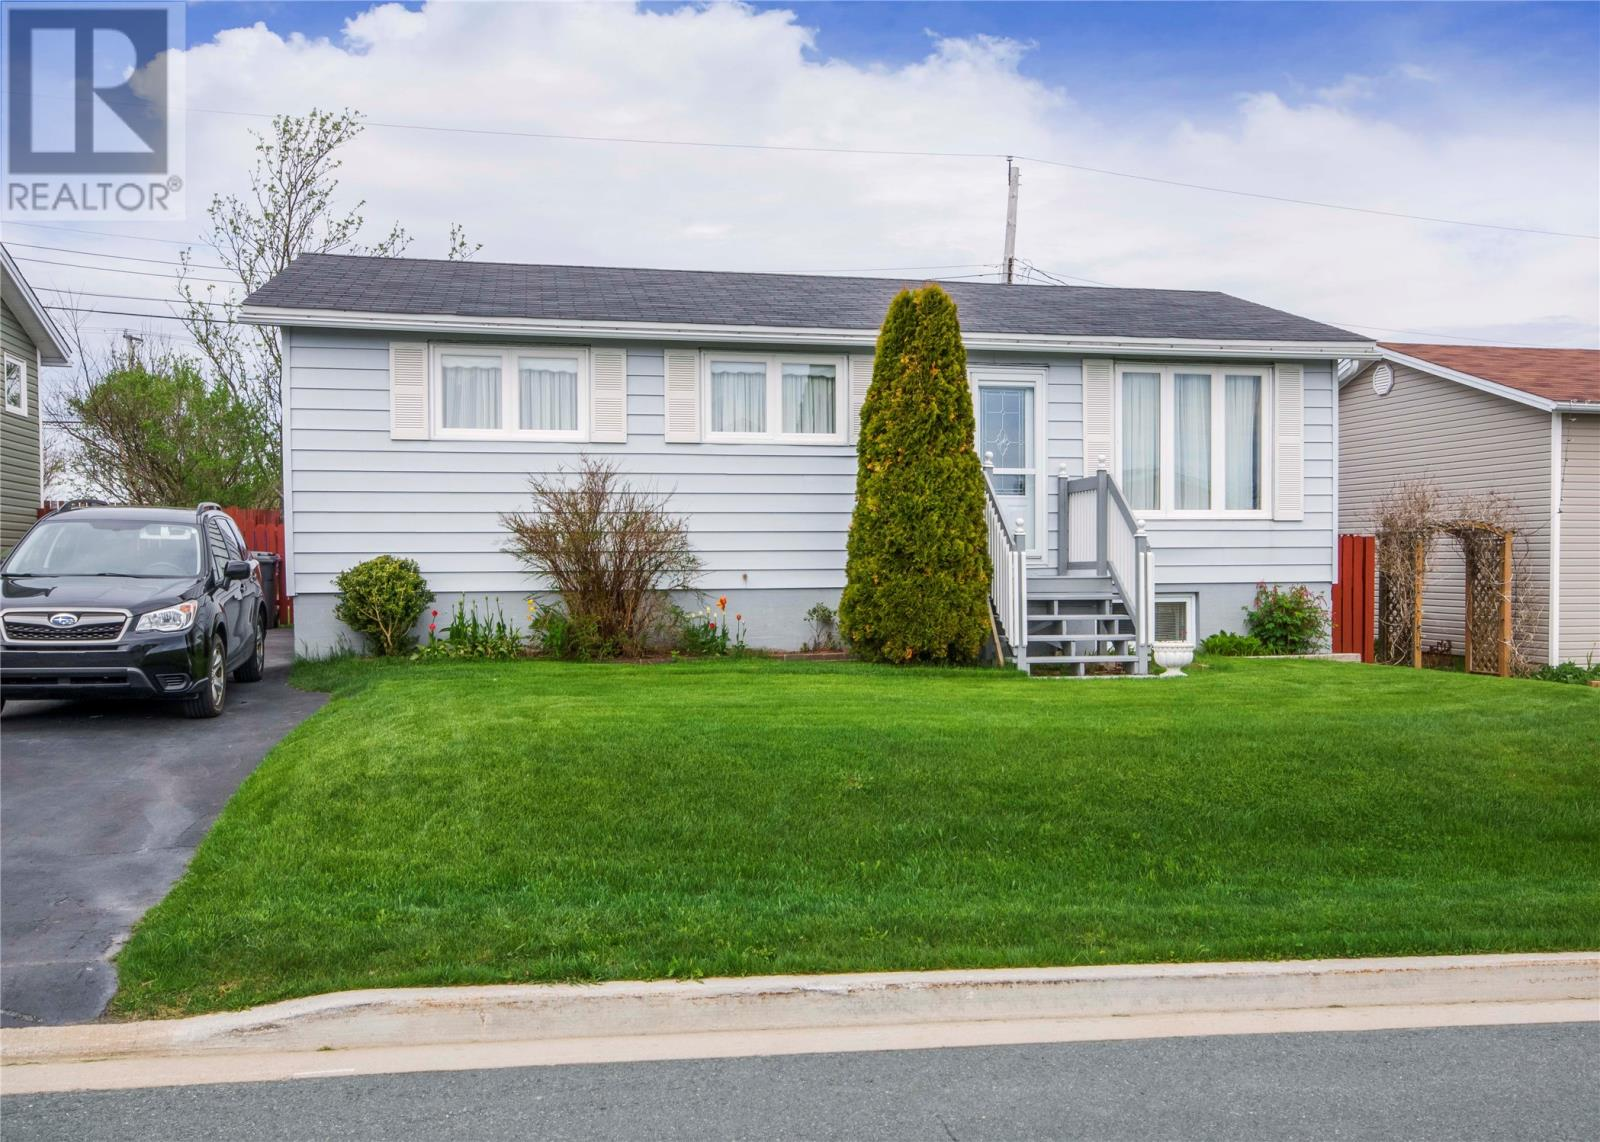 Removed: 6 Crewe Place, Mount Pearl, NL - Removed on 2019-07-14 11:18:08